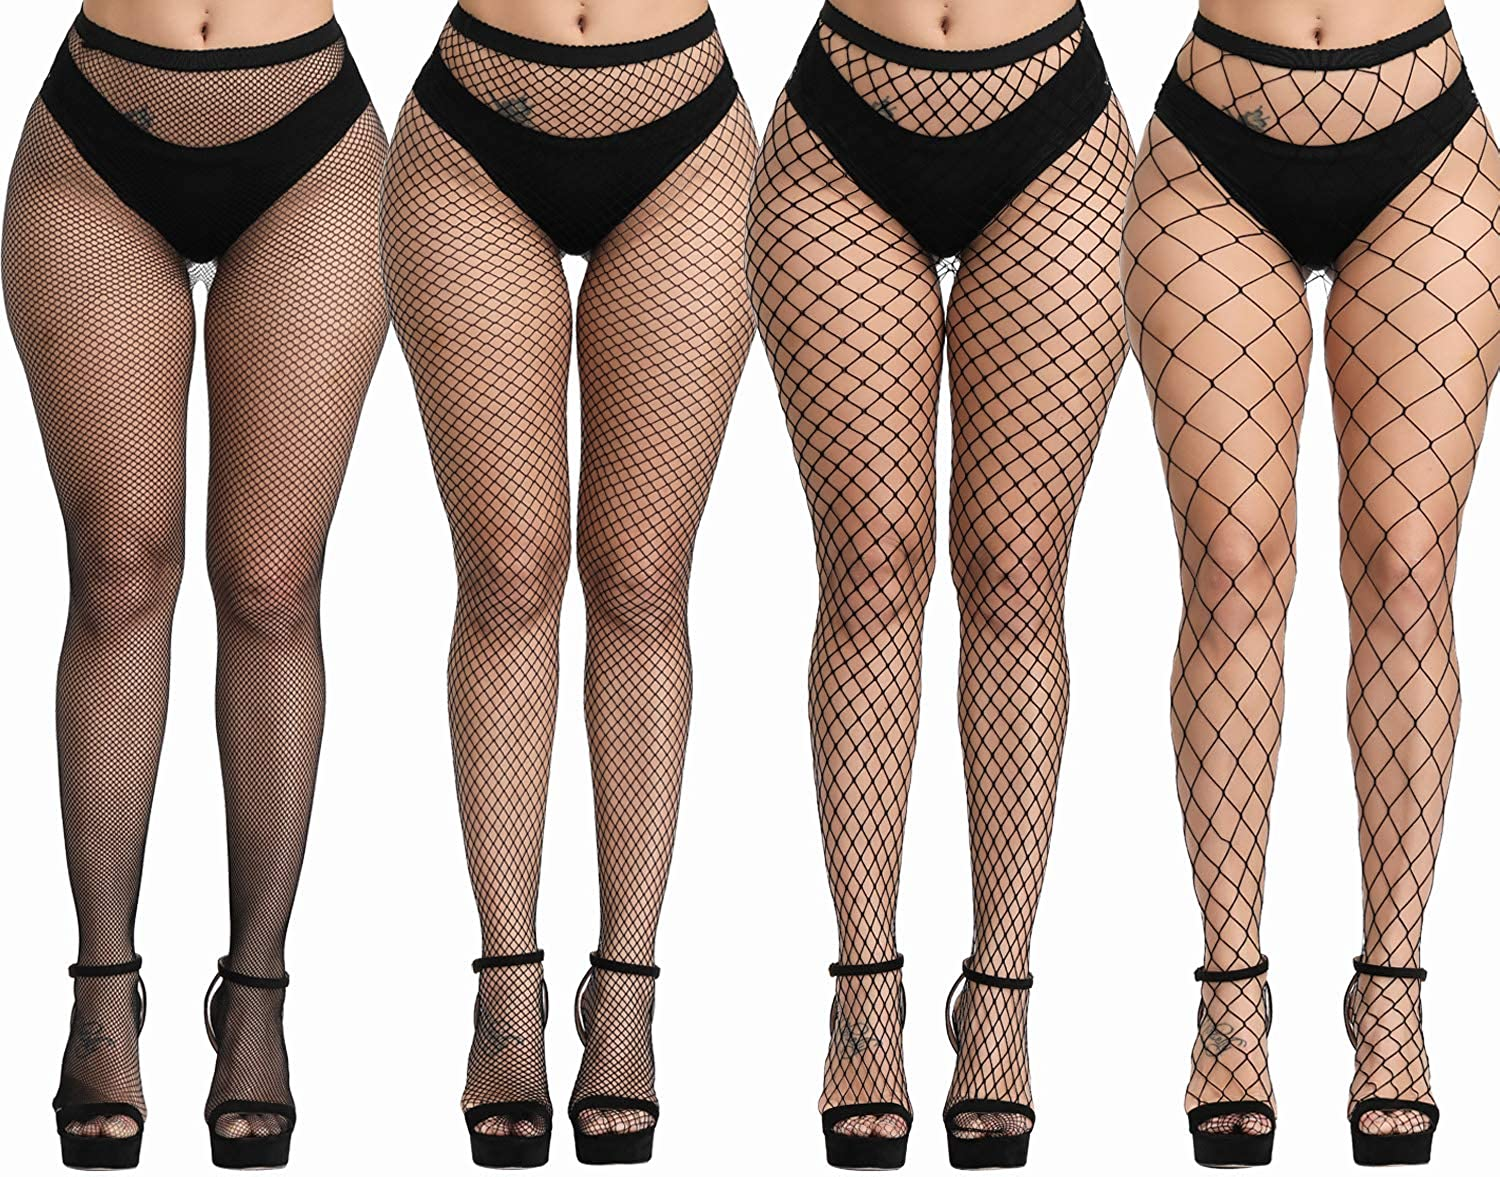 TGD Womens Fishnet Tights Suspender Pantyhose Thigh High Stockings Black 4 Pairs